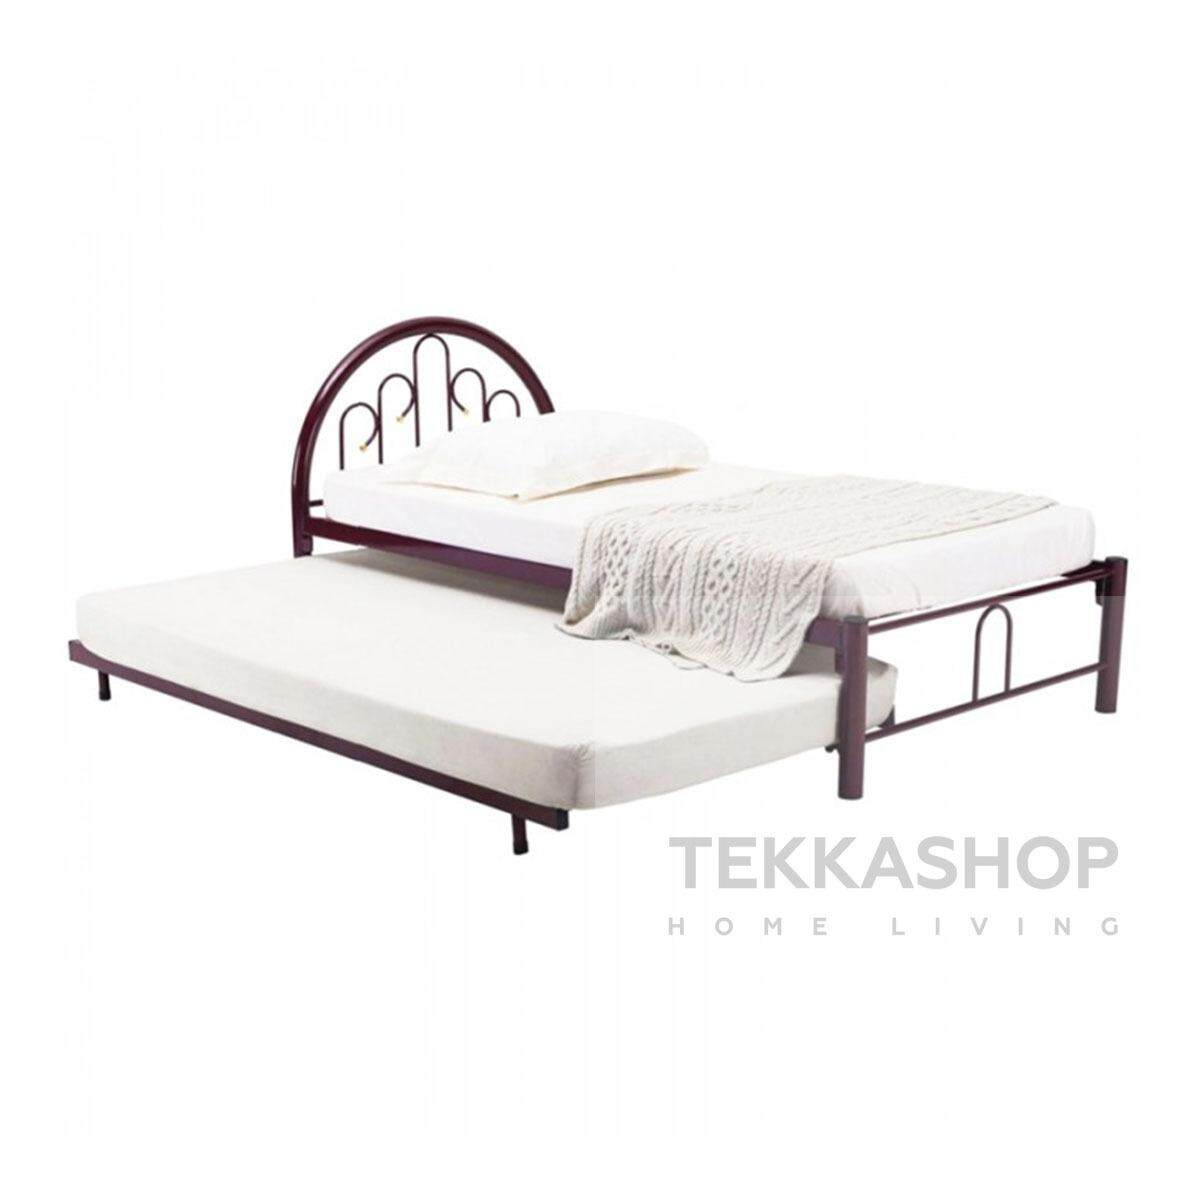 Tekkashop Gdsbf2538r Single Metal Bed Frame With Pull Out Bed Red